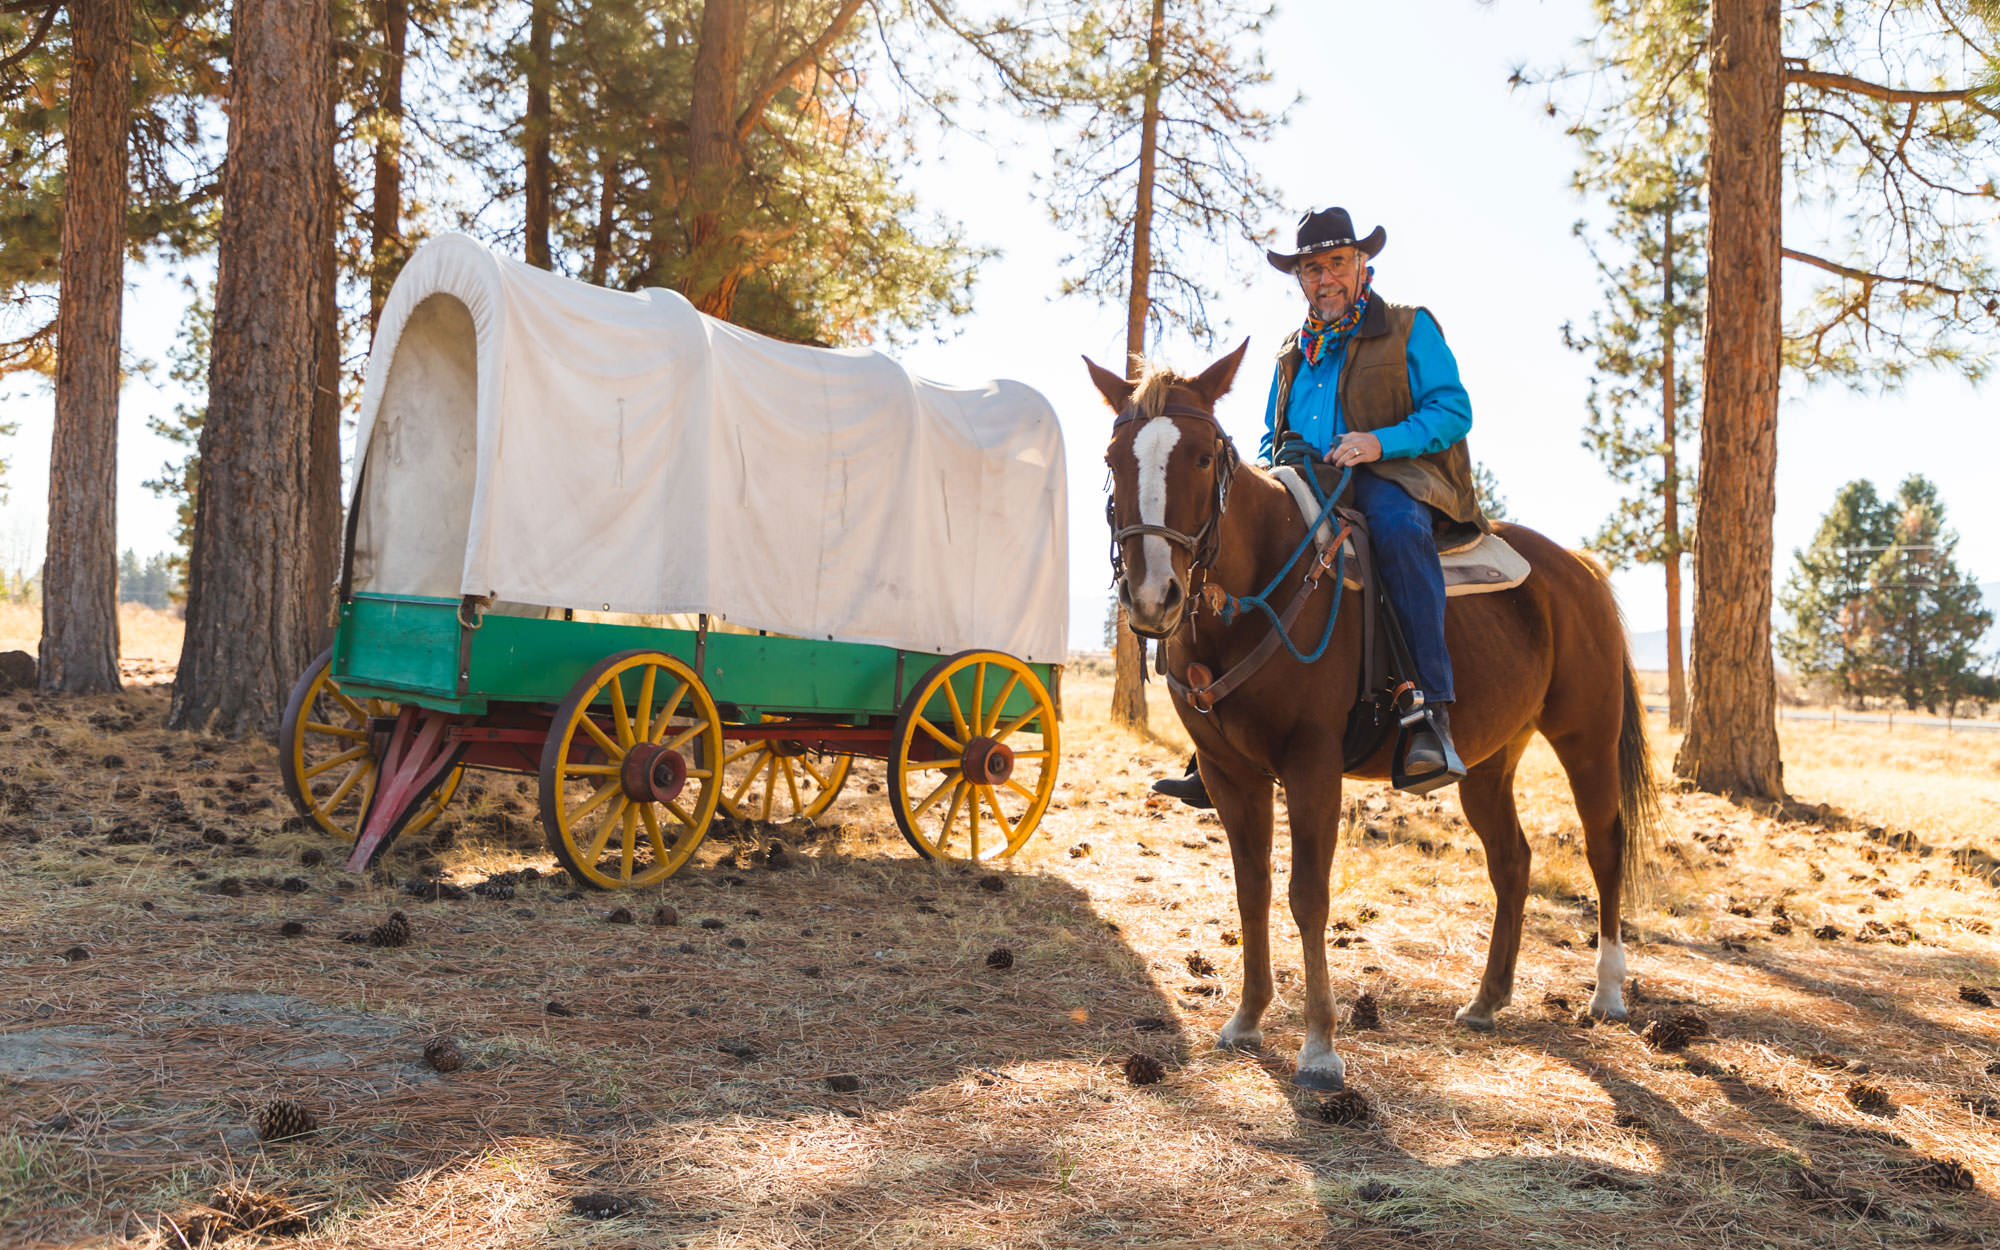 A man wearing a cowboy hat sits and smiles while riding a horse in front of a replica of an Oregon Trail wagon.